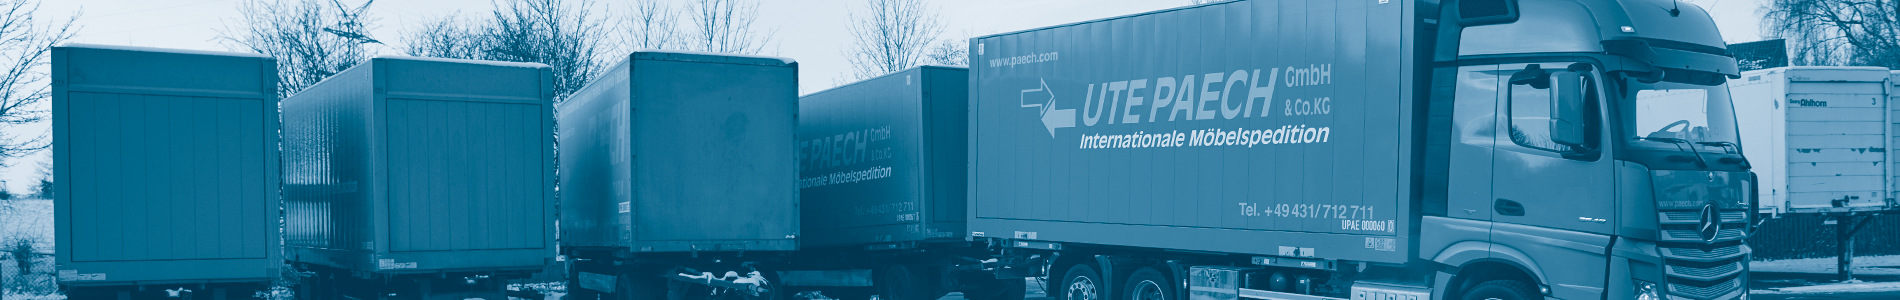 Ute Paech GmbH & Co. KG - Company relocation